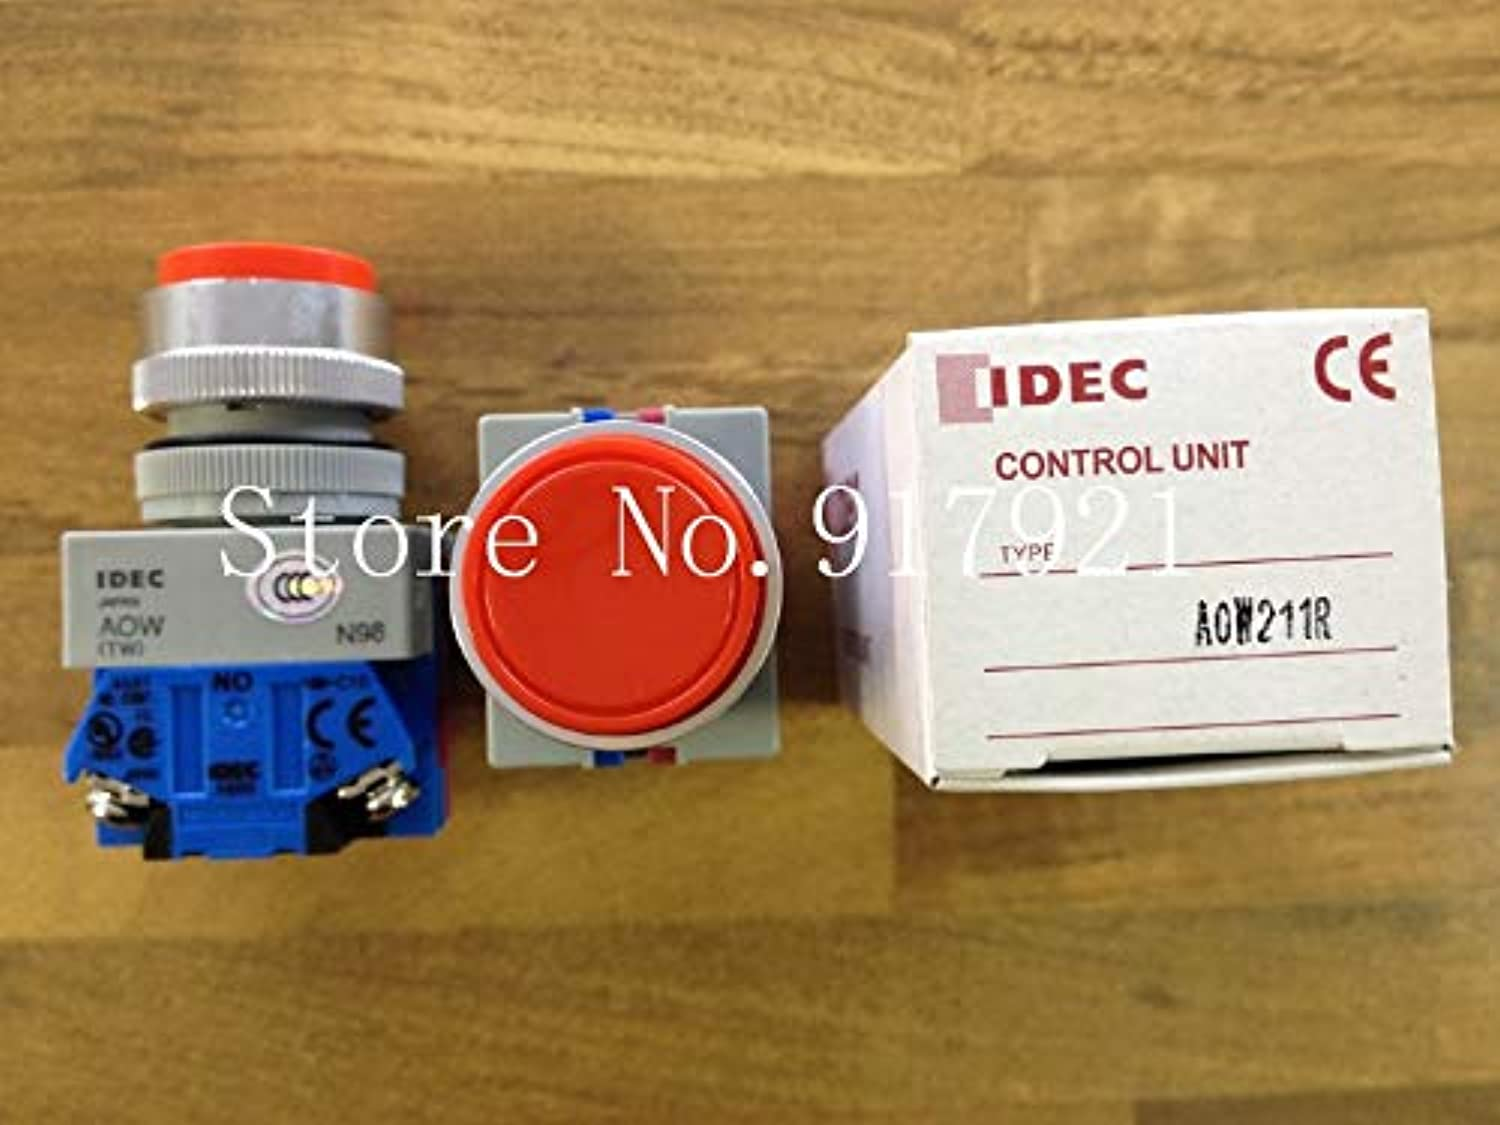 [ZOB] Japan's IDEC Idec and AOW211R NO+NC with 22 red Button self-Locking Flat Genuine Original -5PCS LOT